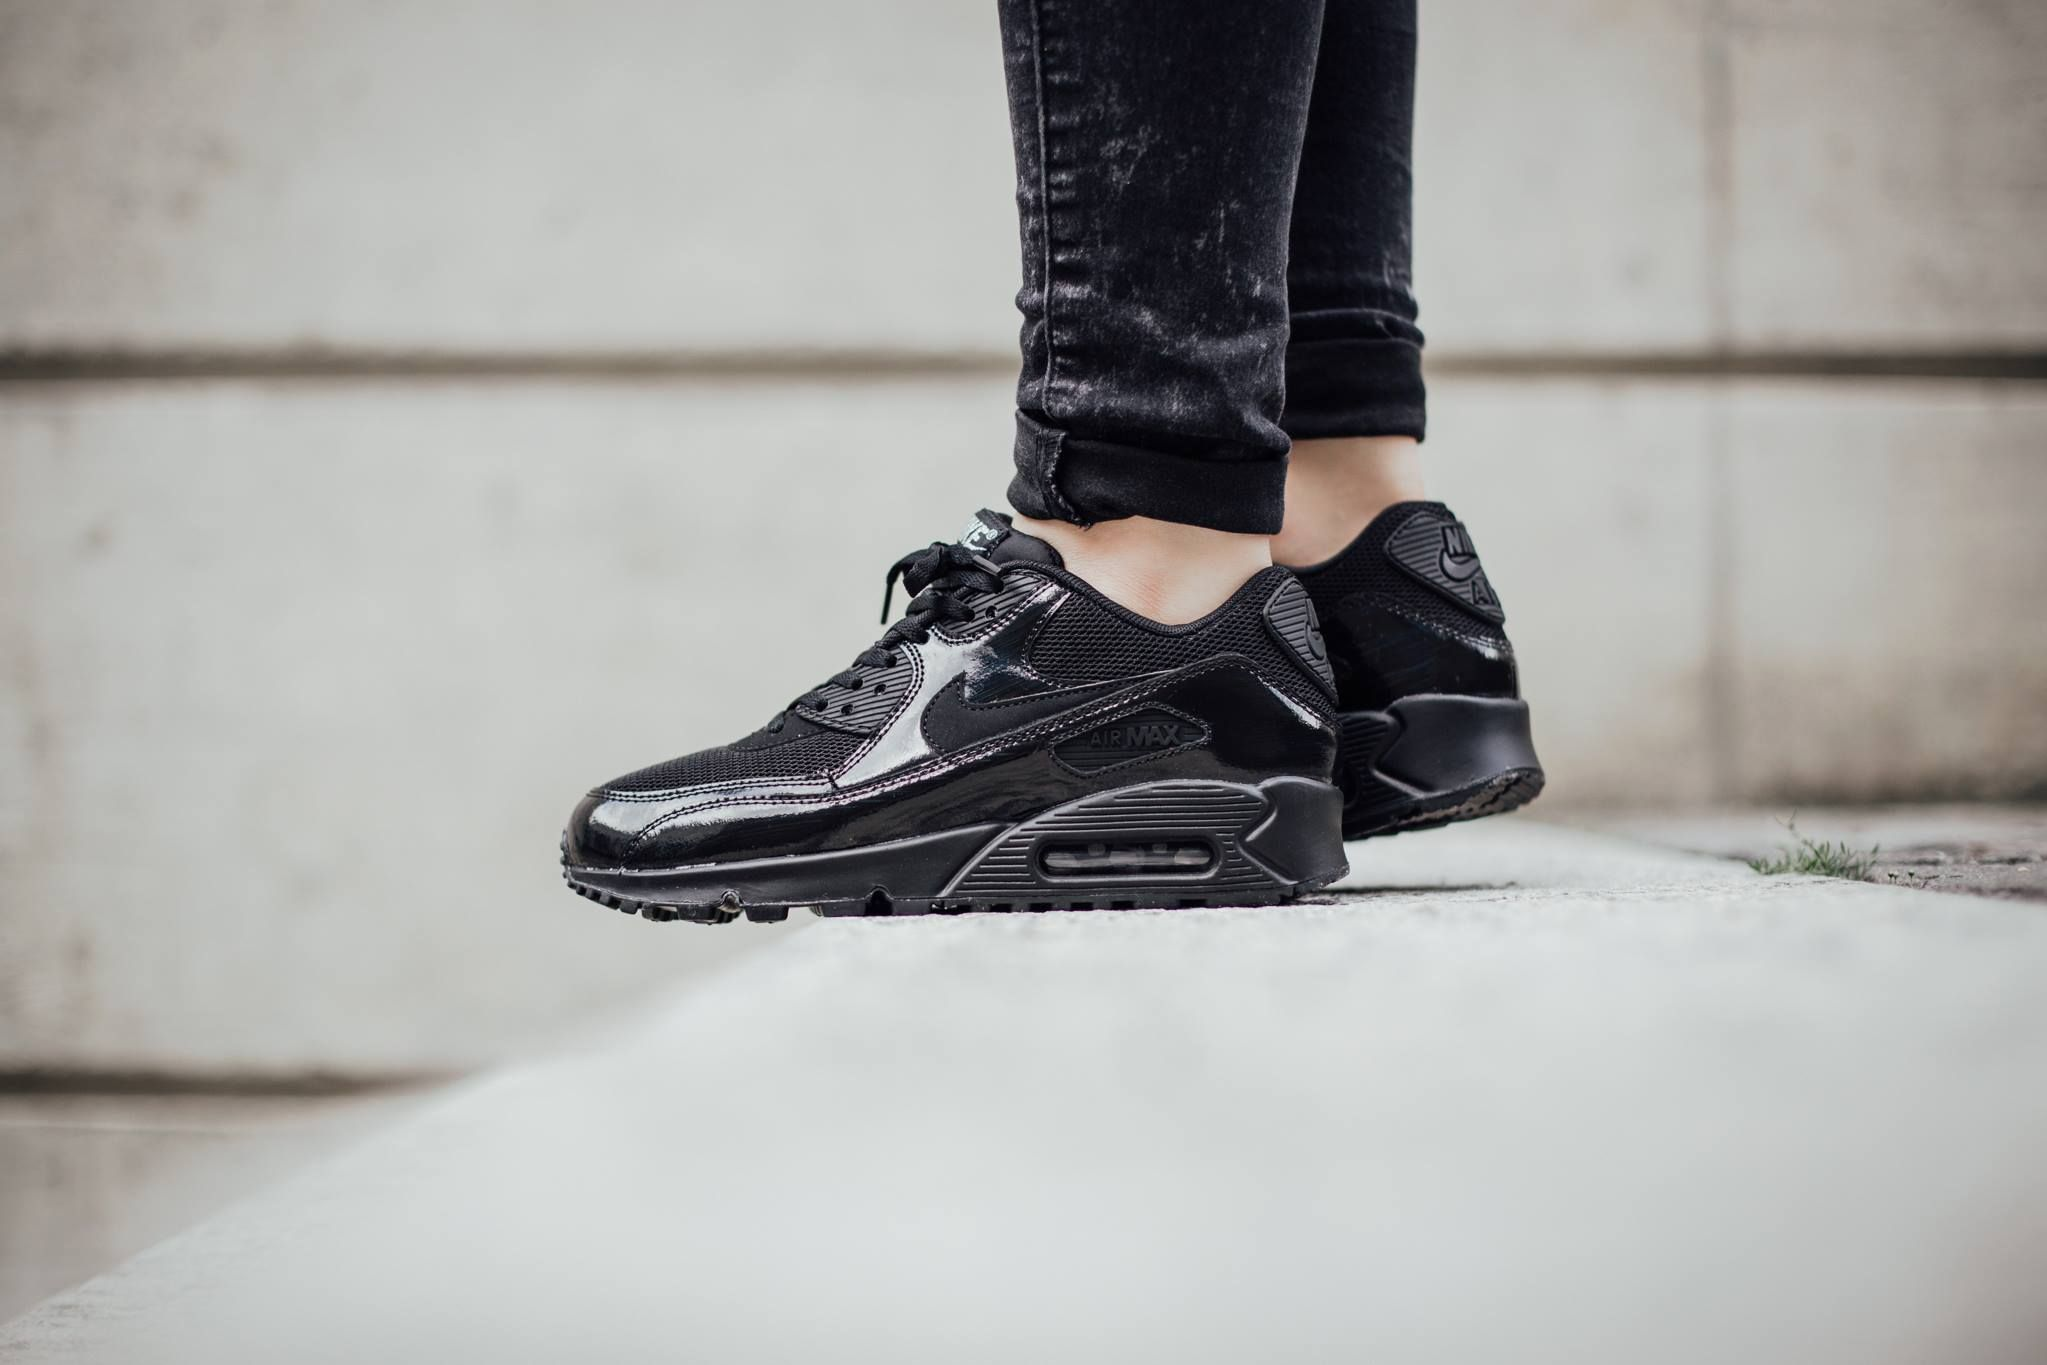 nike air max 90, mens adidas yeezy 350 boost black,nike air